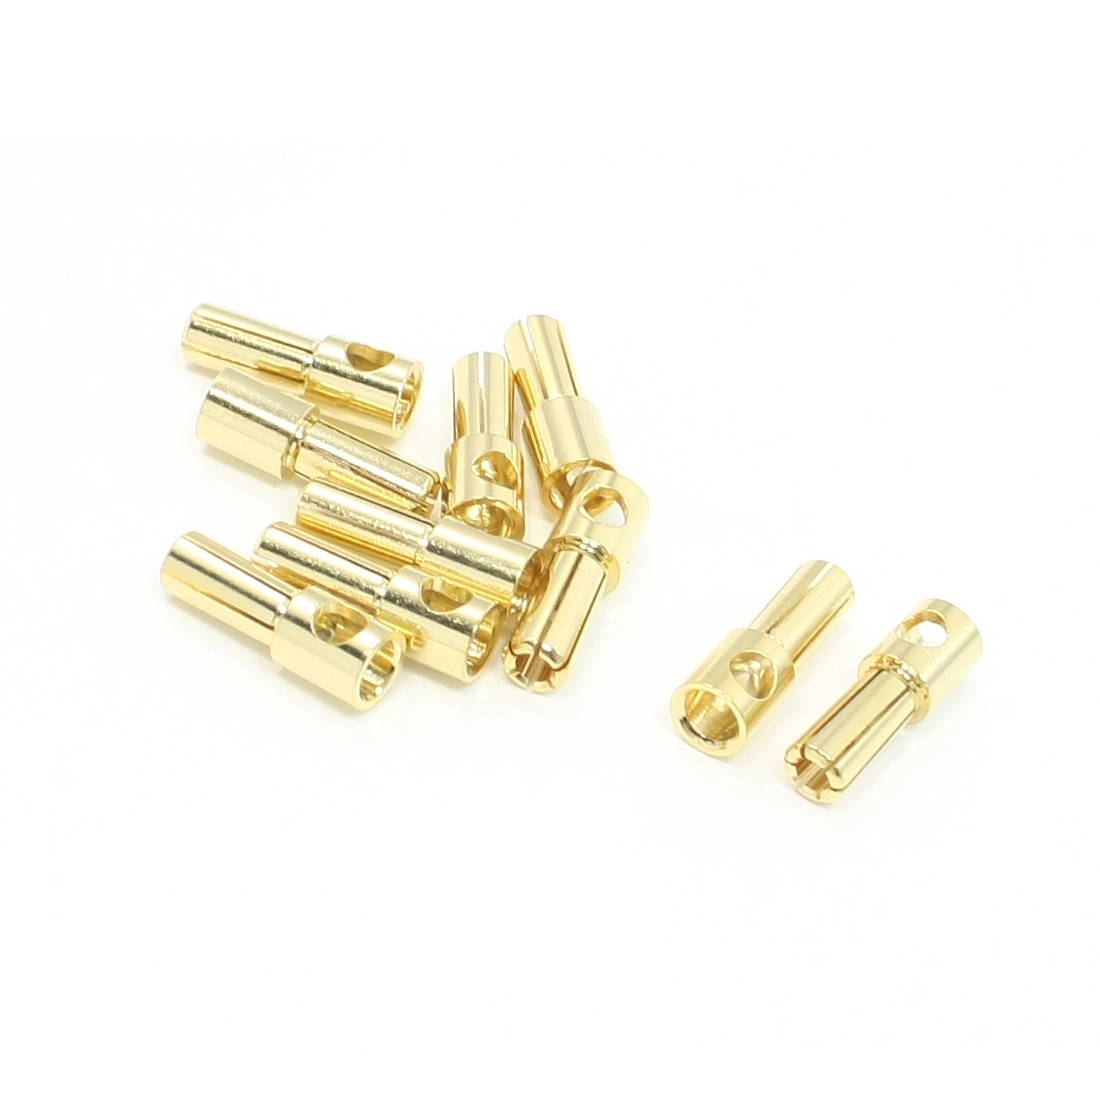 10pcs RC Model Li-Po Battery Male Banana Connector 5mm Diameter